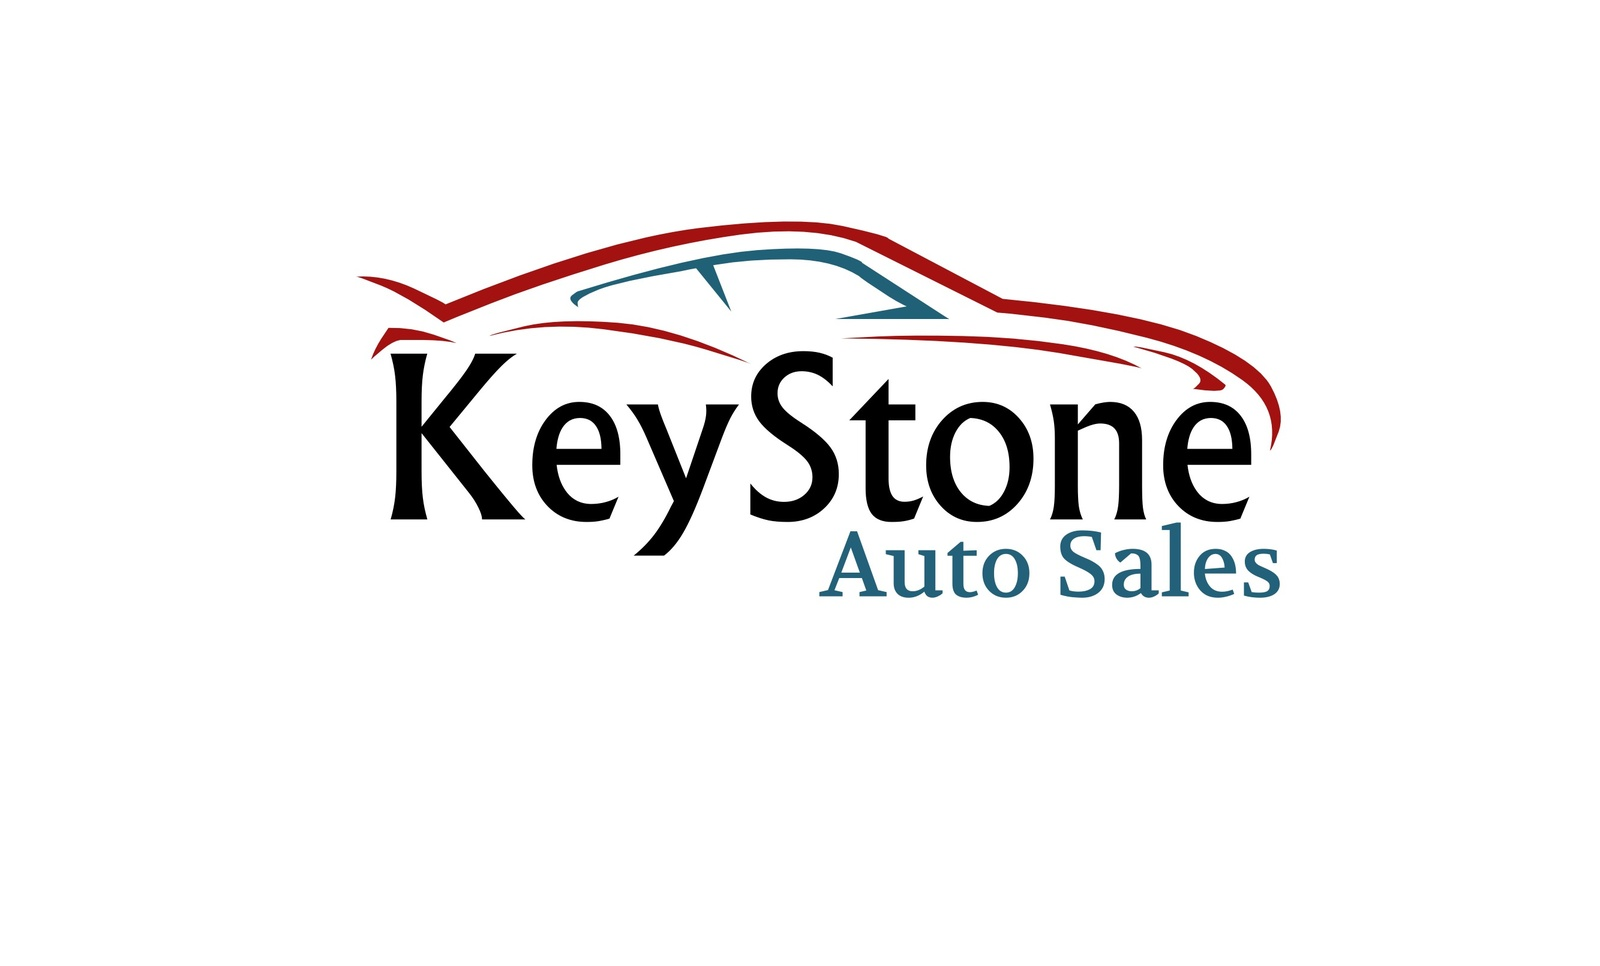 Keystone Kia Used Cars >> KeyStone Auto - Stillwater, MN: Read Consumer reviews, Browse Used and New Cars for Sale